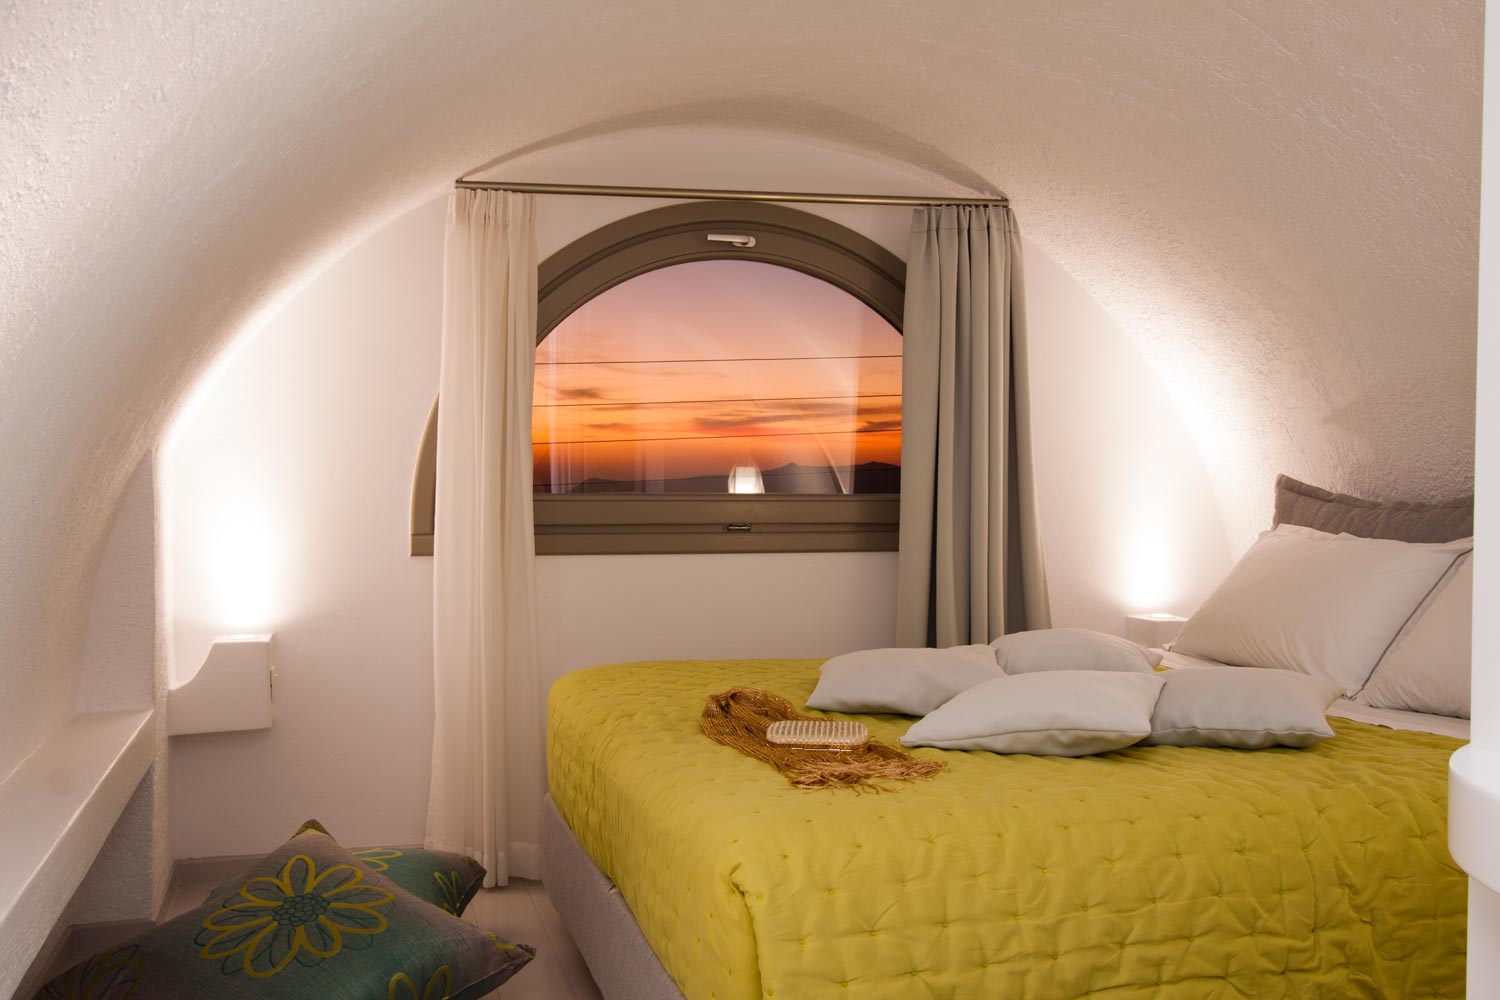 nemesis-accommodation-santorini-island-greece-studio-room5